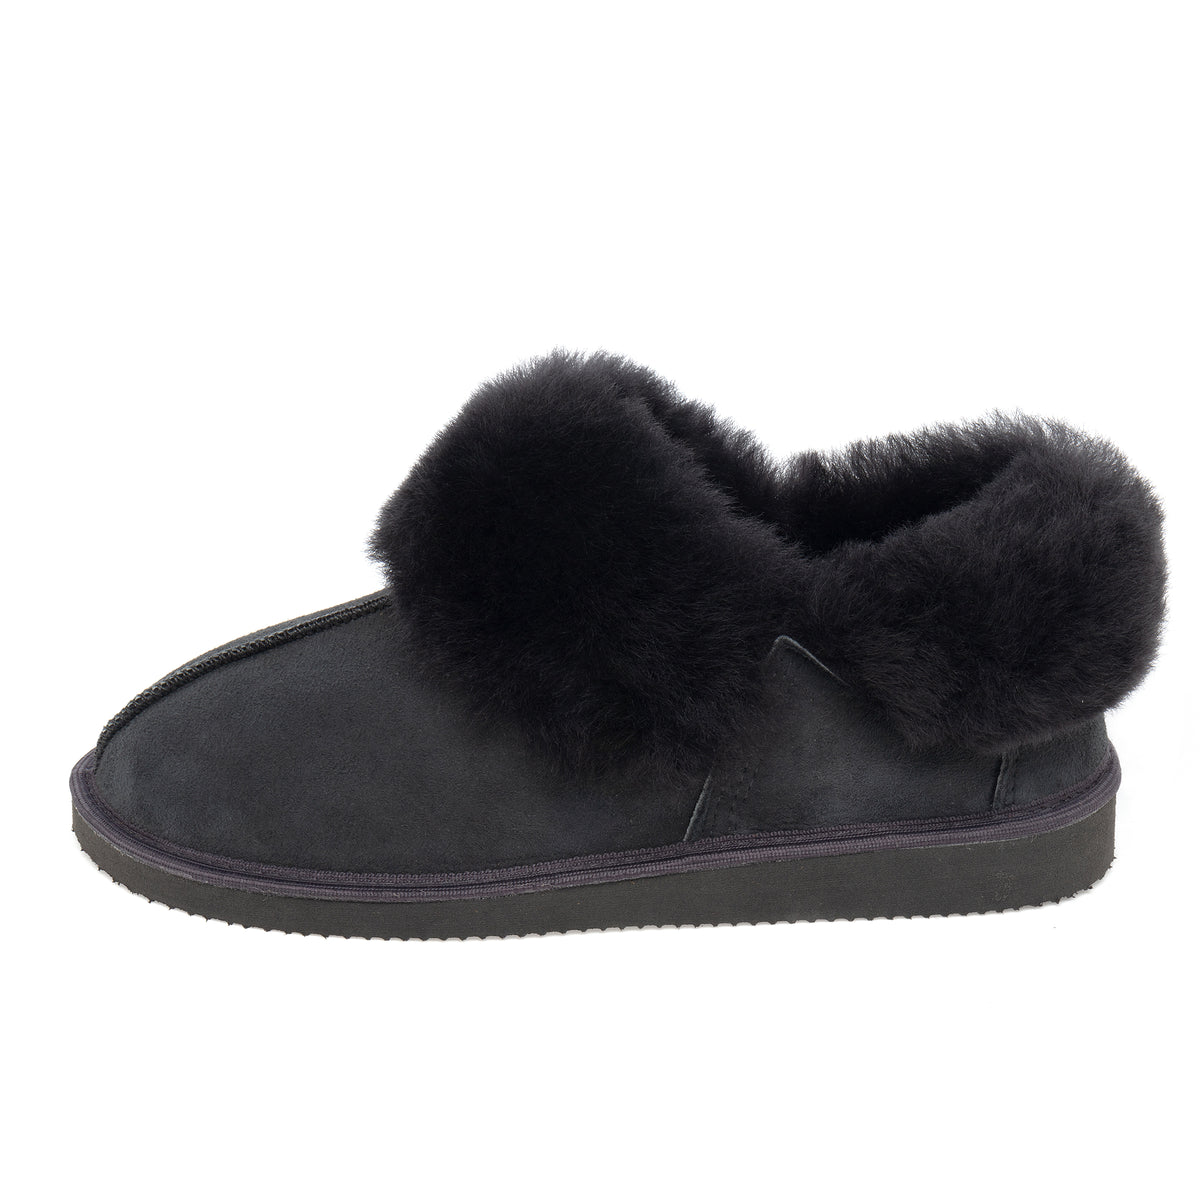 Gael Sheepskin Slippers - Graphite